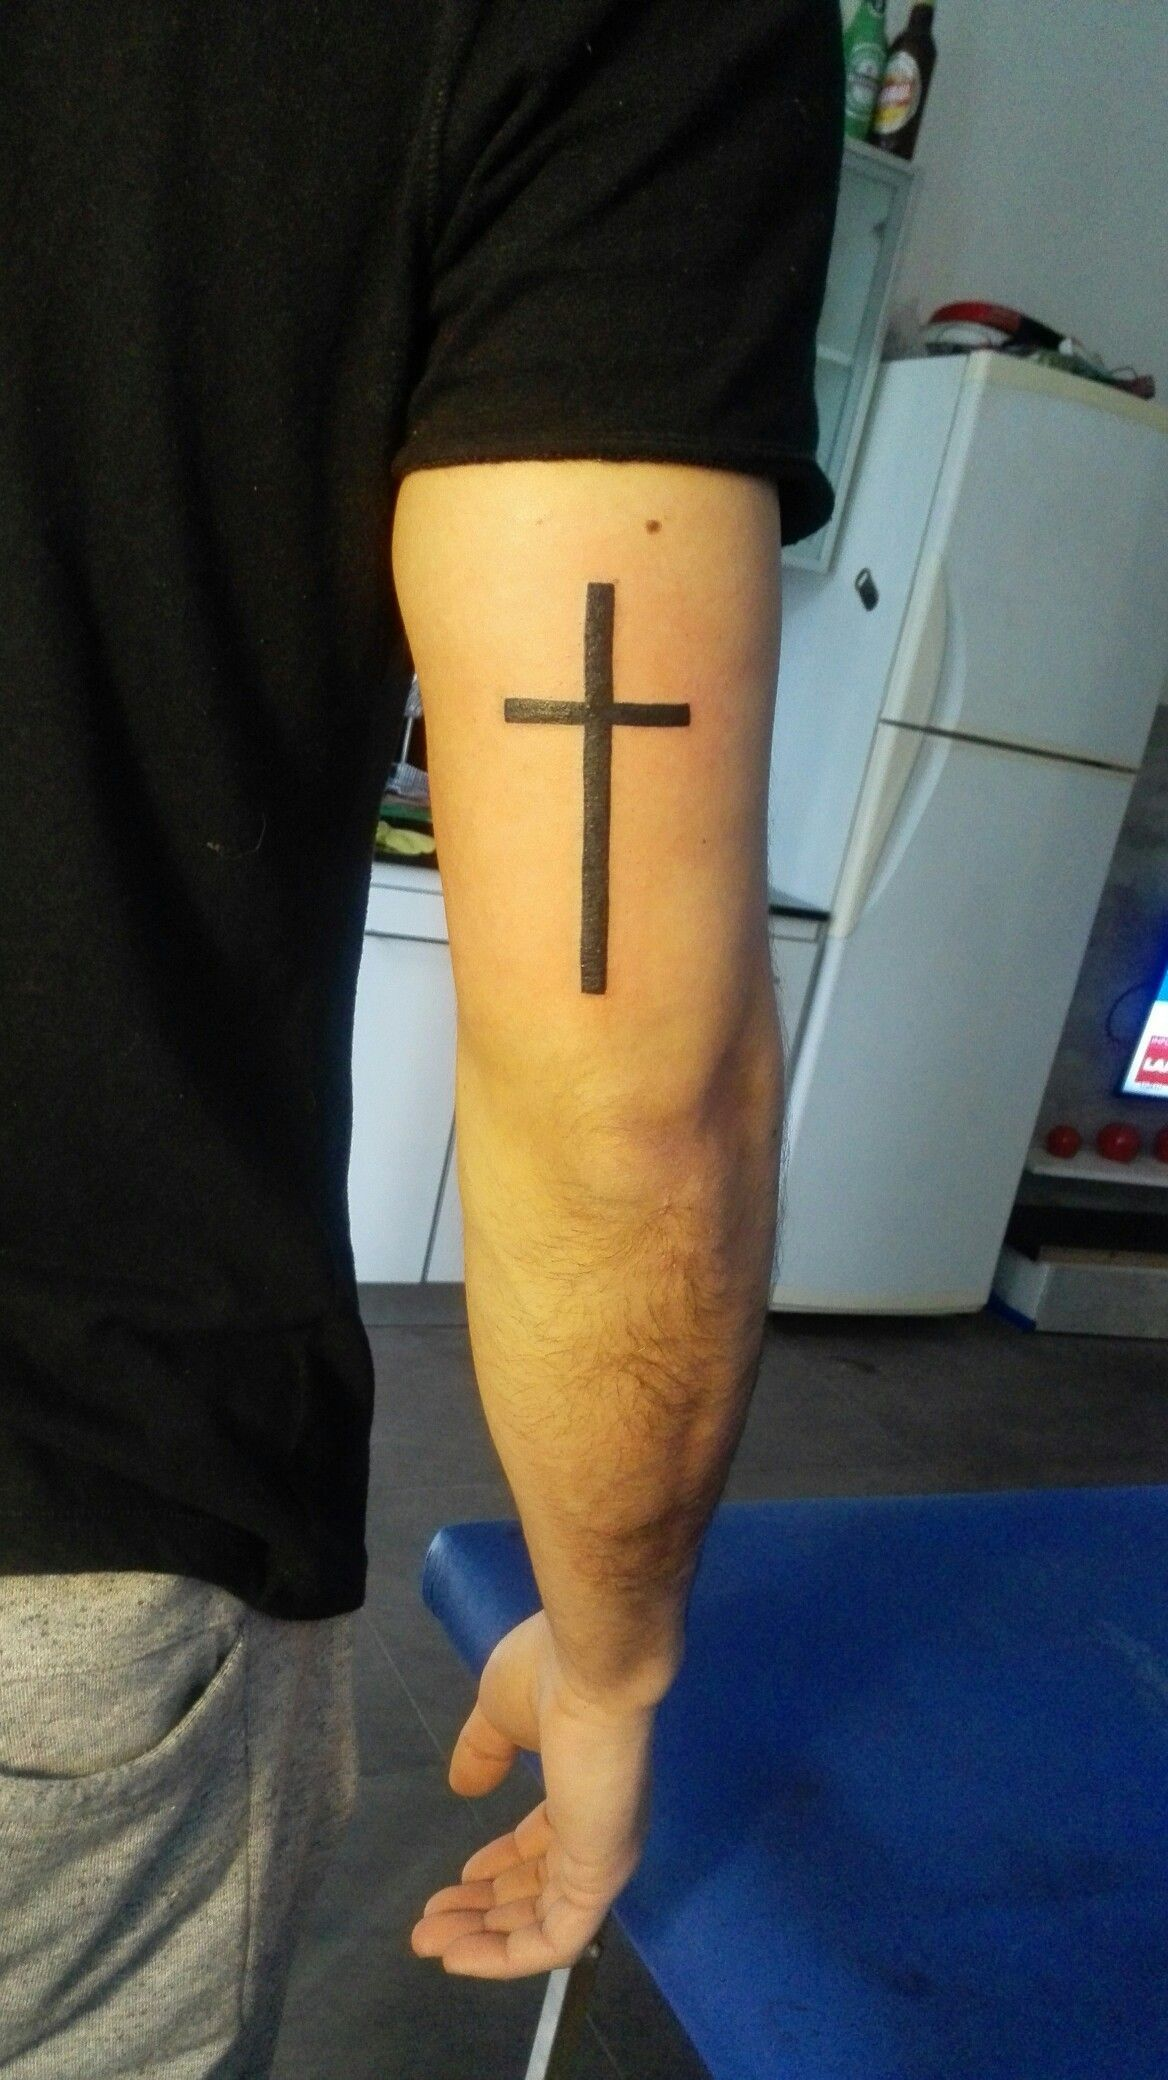 Cruz Tatuaje Hombre Google Search Tatus Tattoo Ideen Tattoo